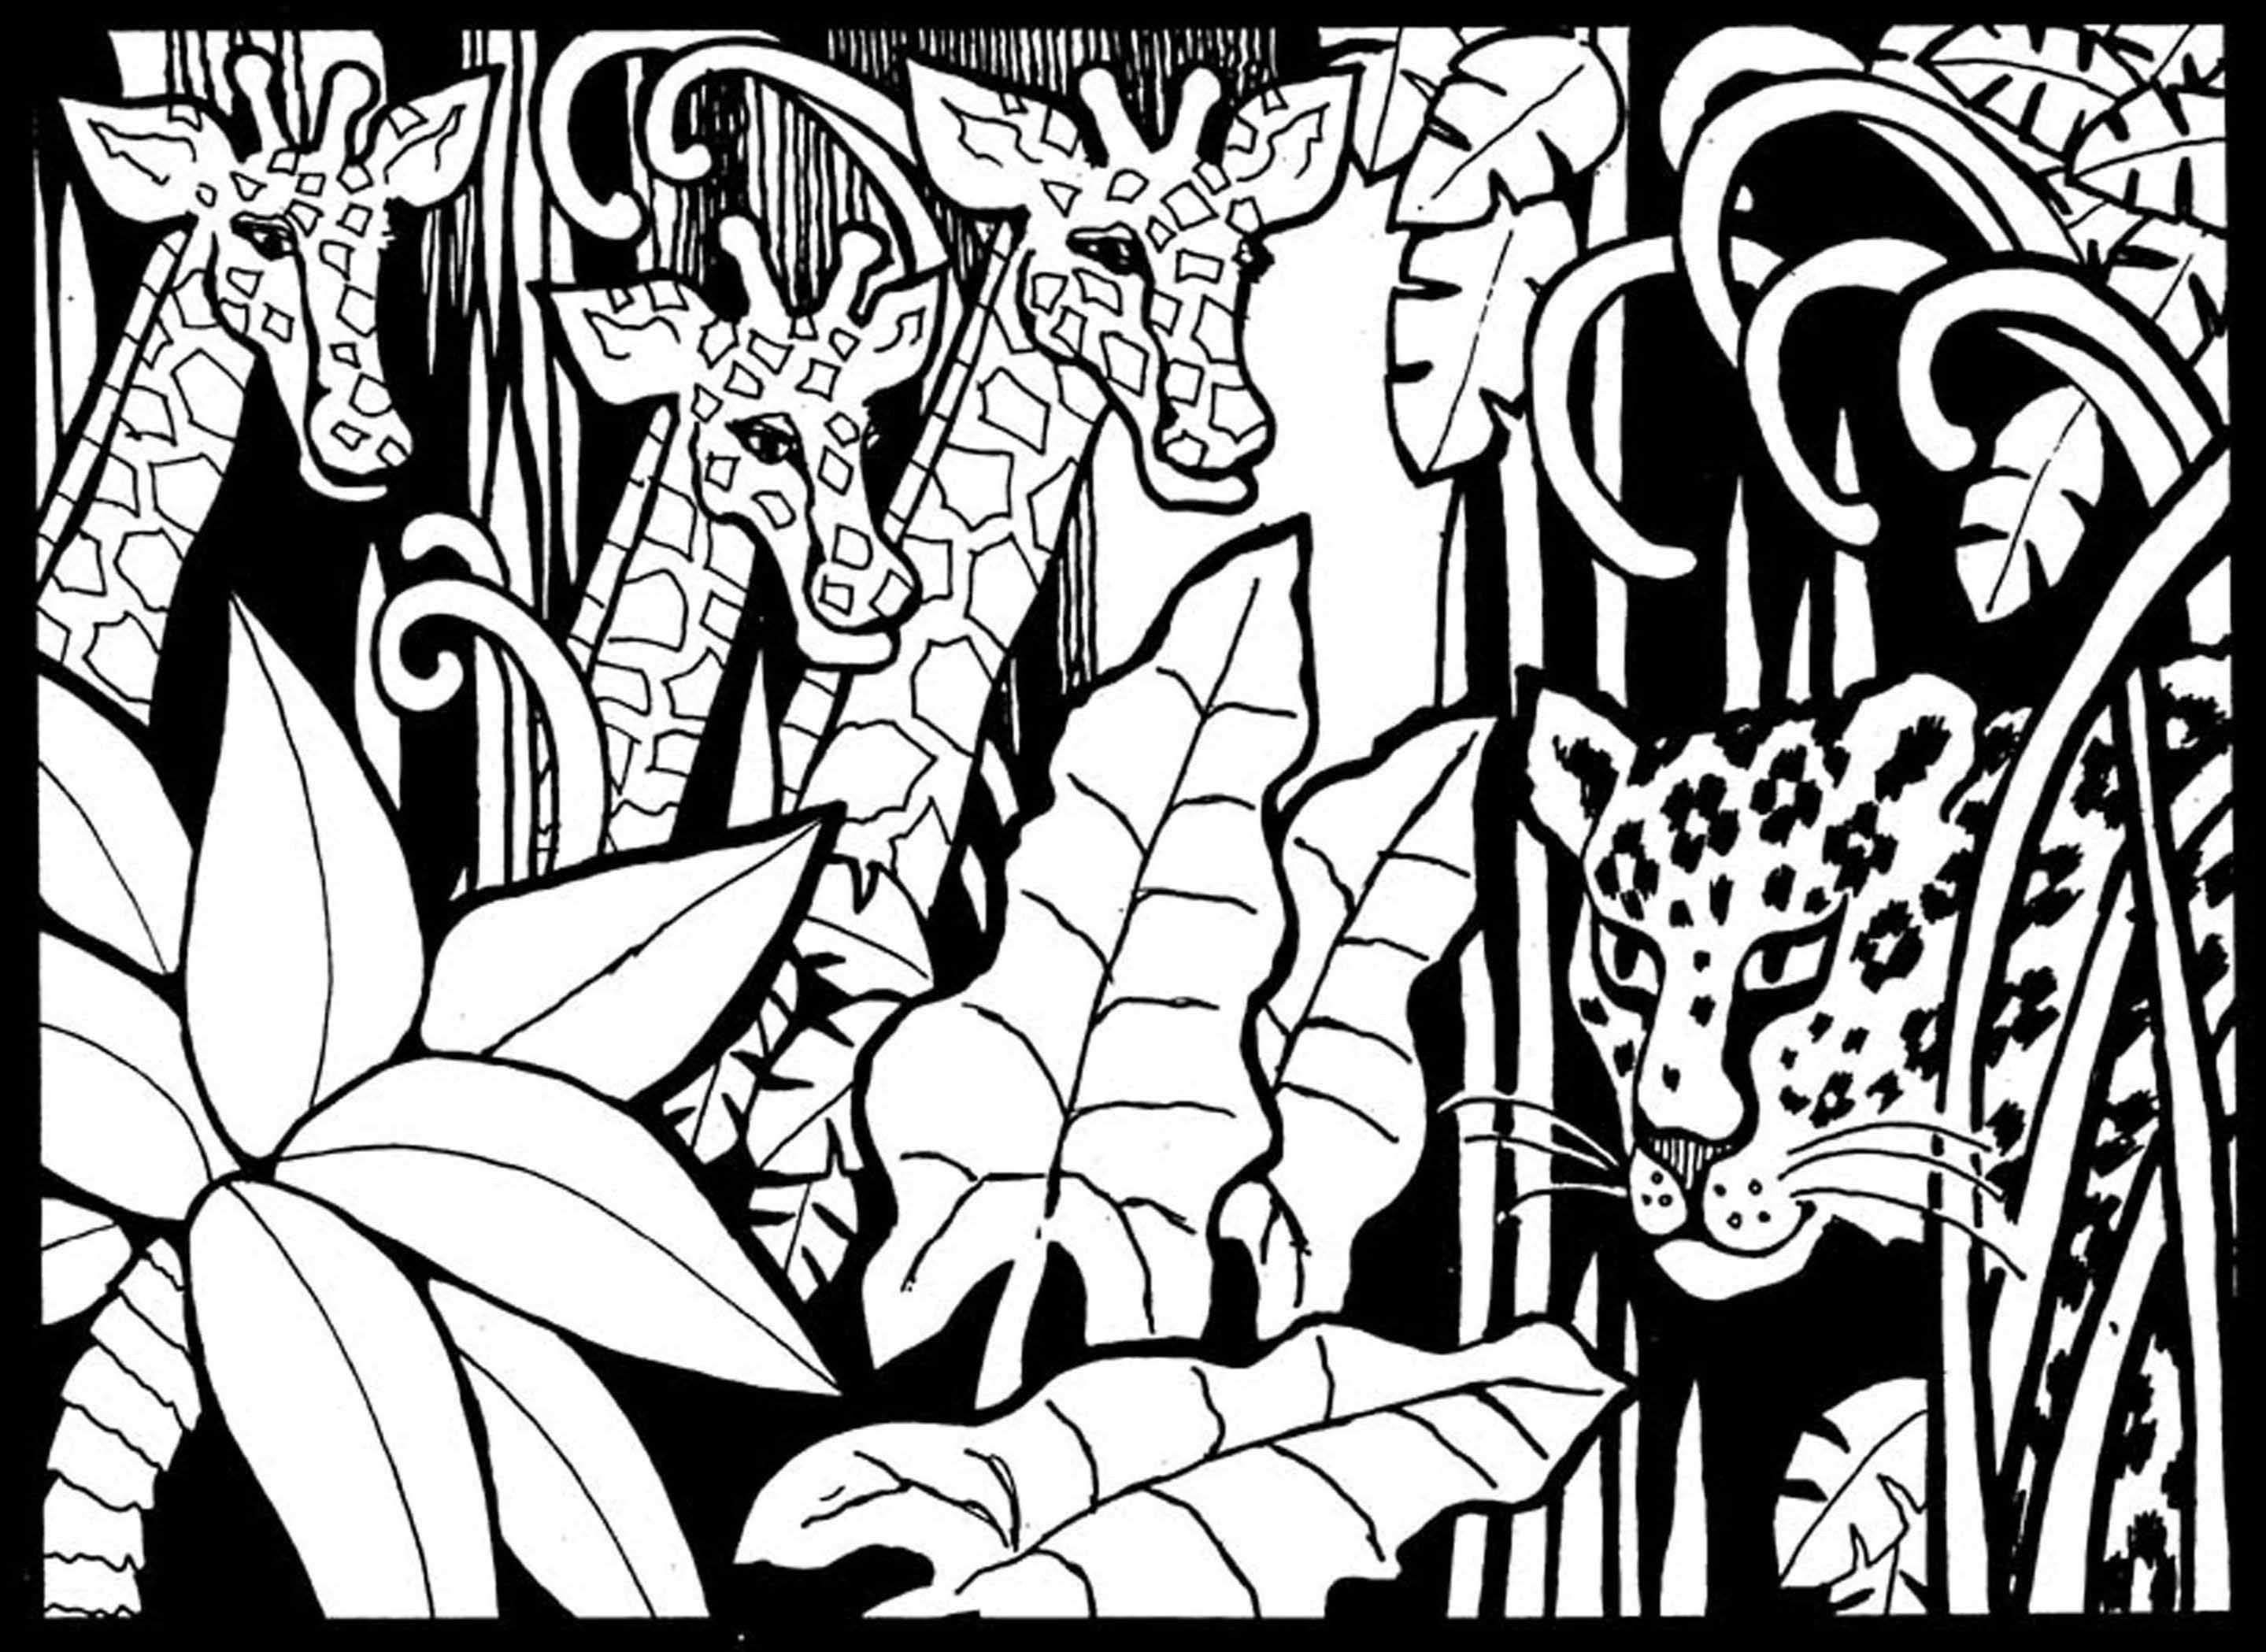 Beautiful Giraffes coloring page to print and color